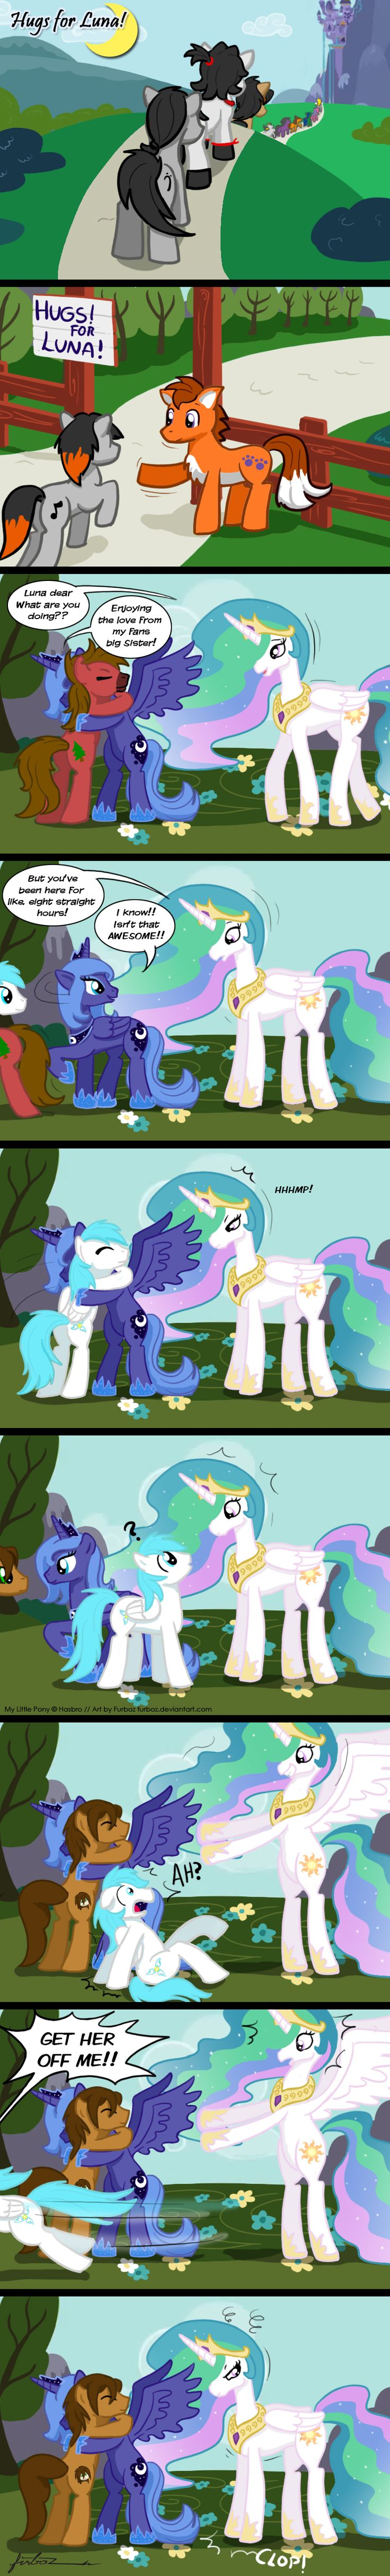 I would hug Celestia if she offered but defiantly Luna.